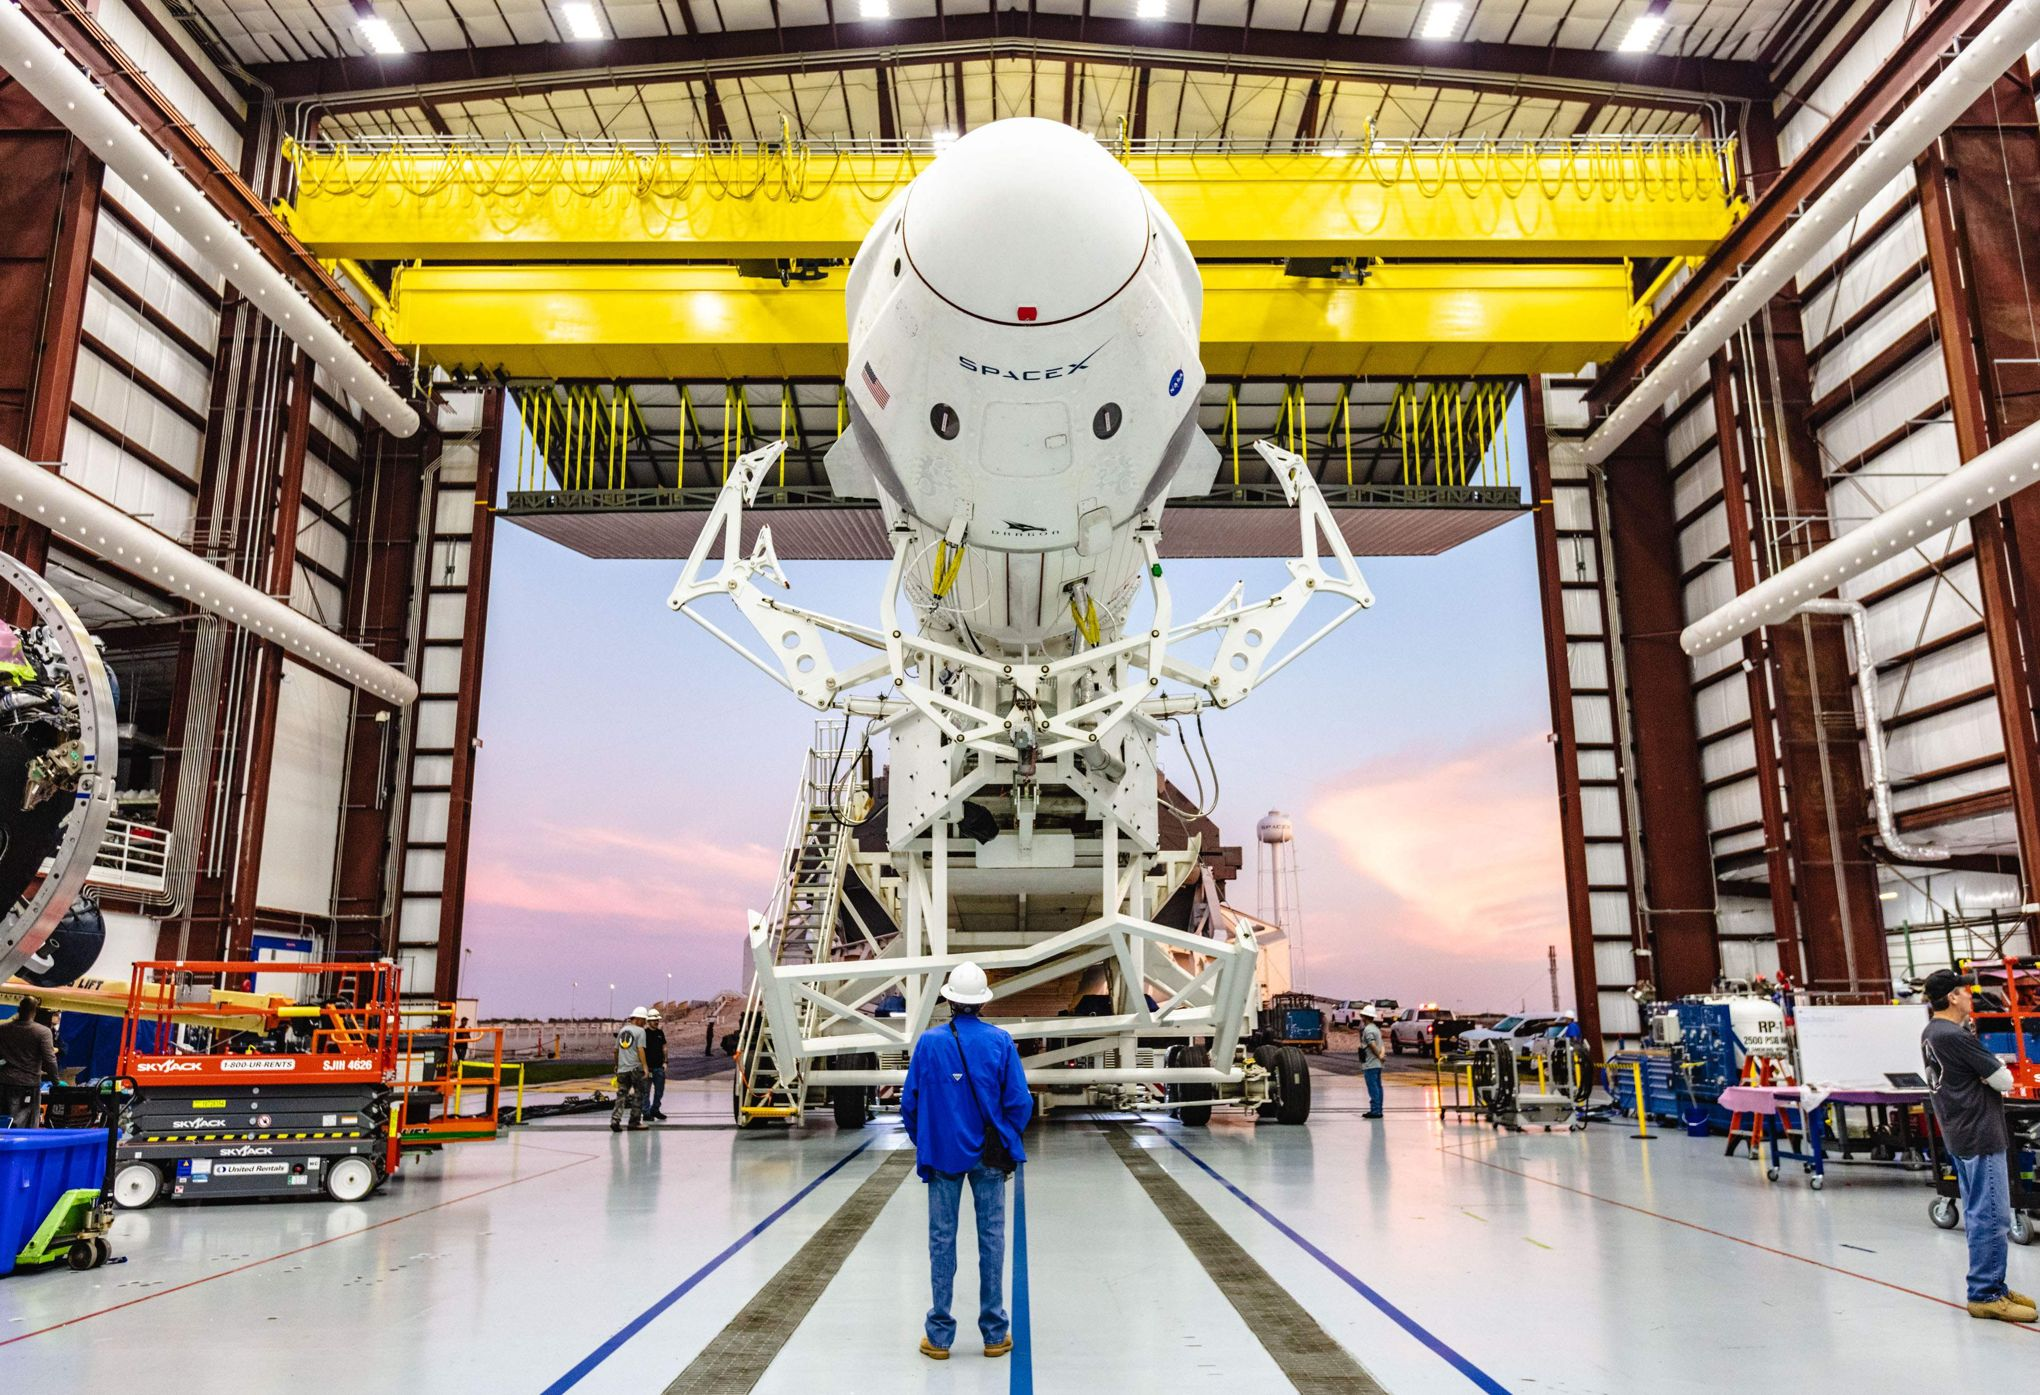 Calendrier Lancement Ariane 2019.Spacex Accuse Son Rival Arianespace De Concurrence Deloyale